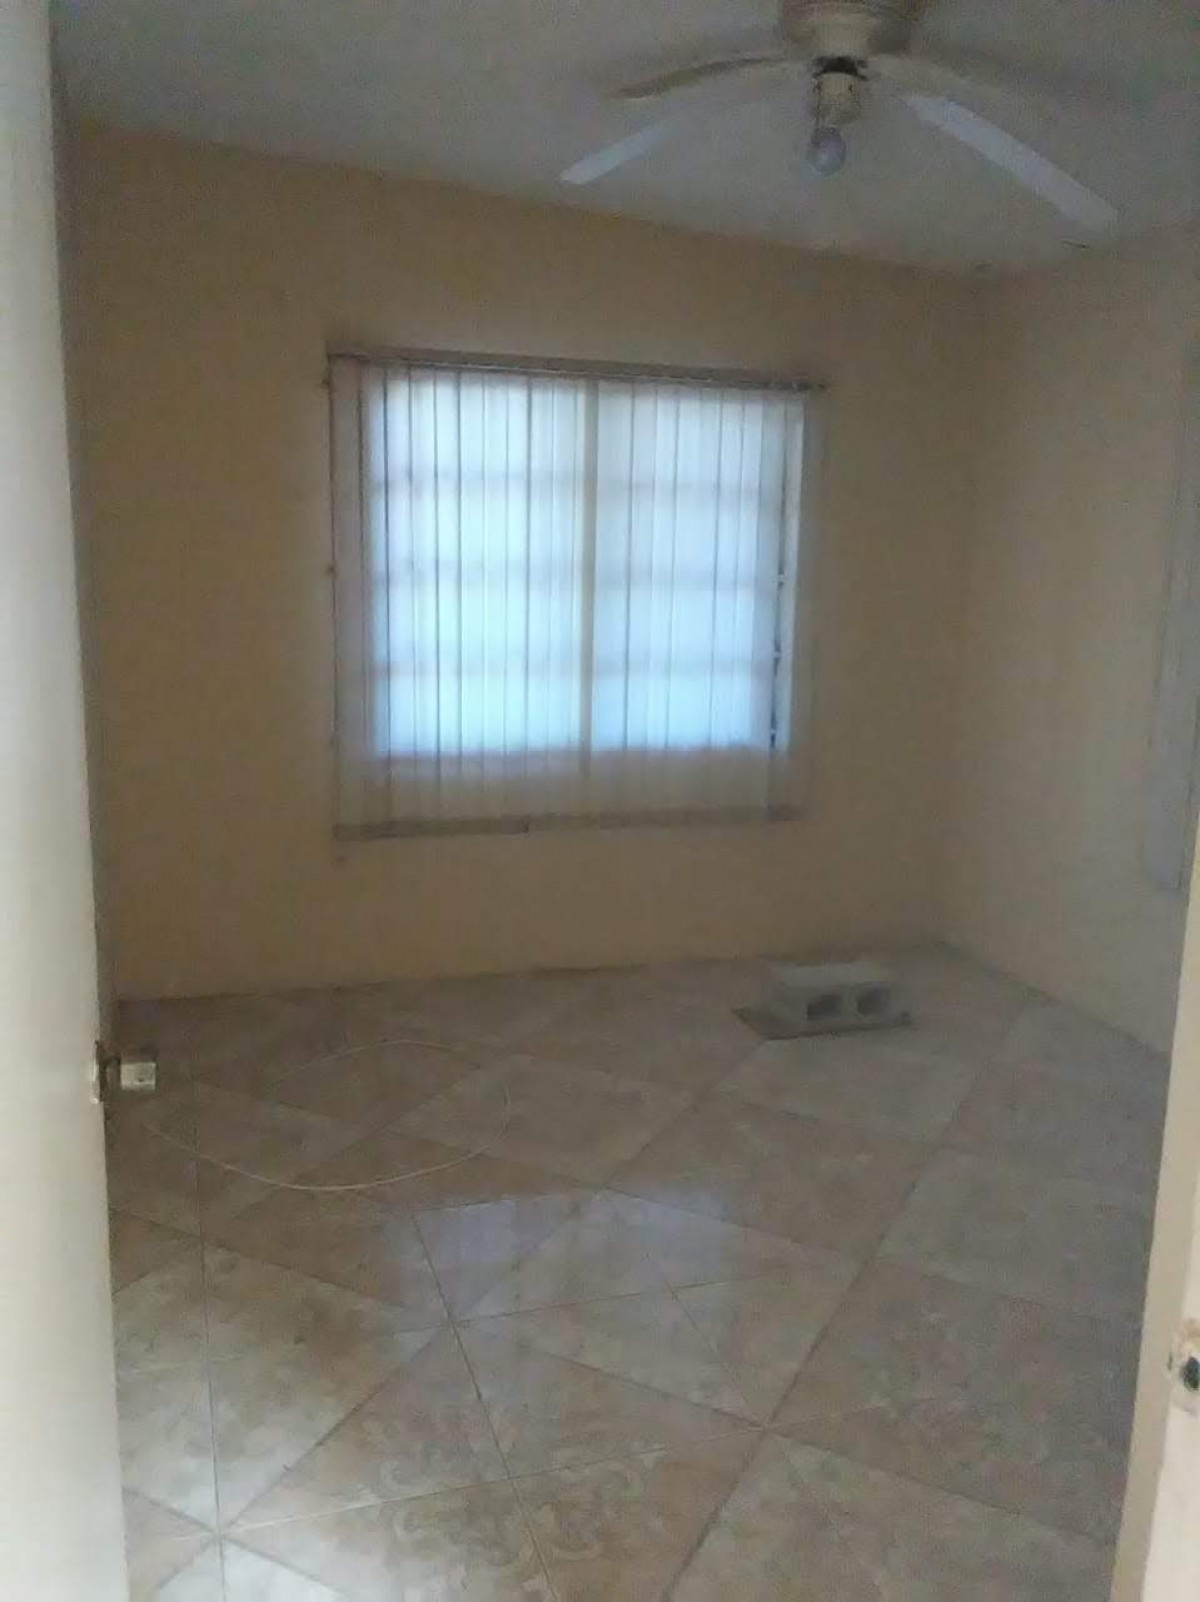 One Bedroom For Rent: Newly Constructed 1 Bedroom For Rent In Duhaney Park